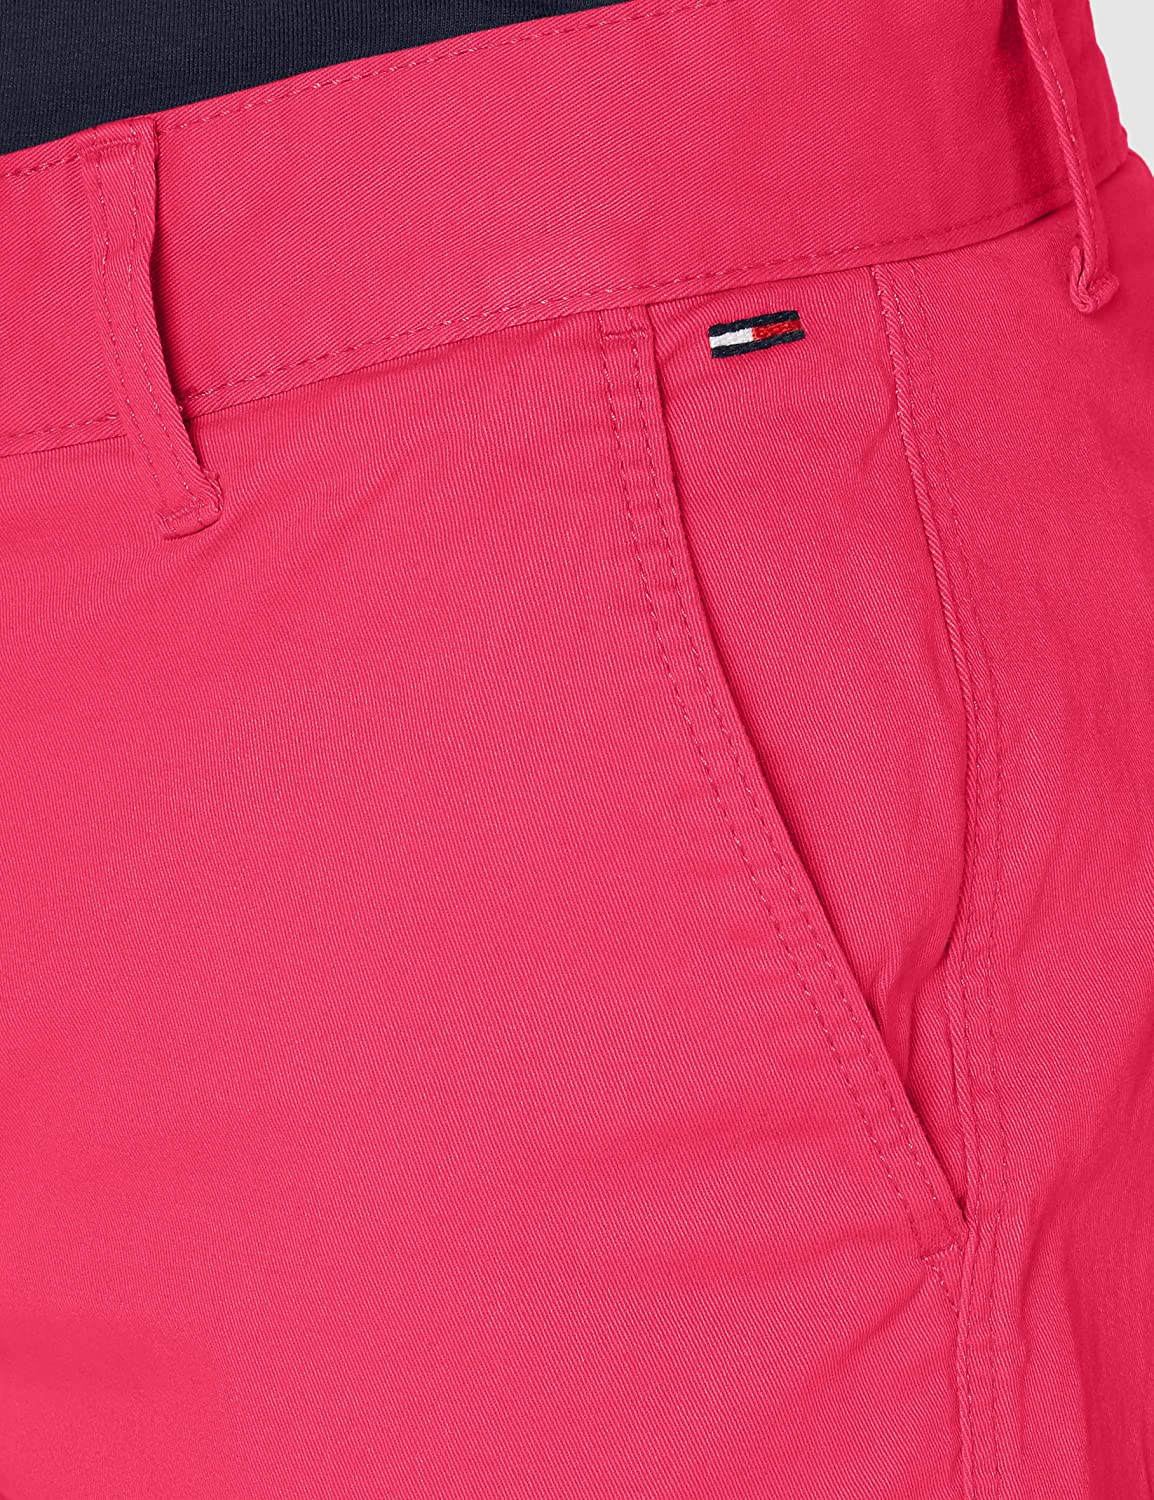 Tommy Jeans TJM Essential Chino Shorts voor heren Roze (Bright Cerise Pink T1k)